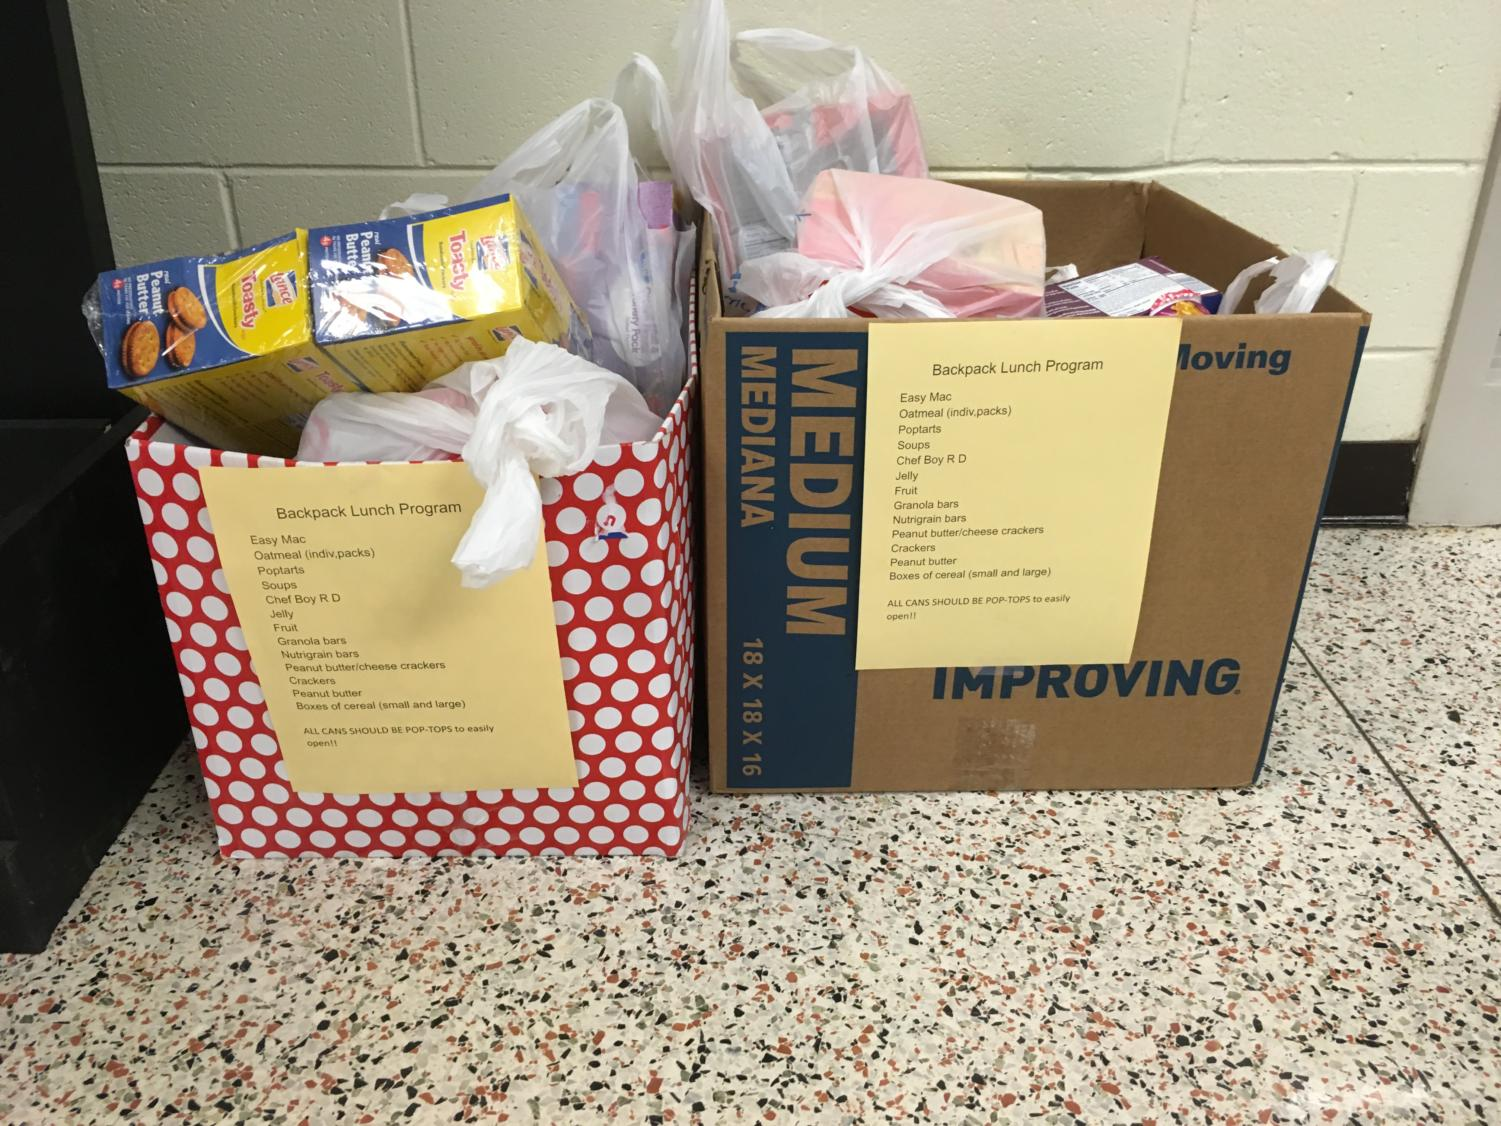 The Senior Class has collected 2 full boxes of donations.